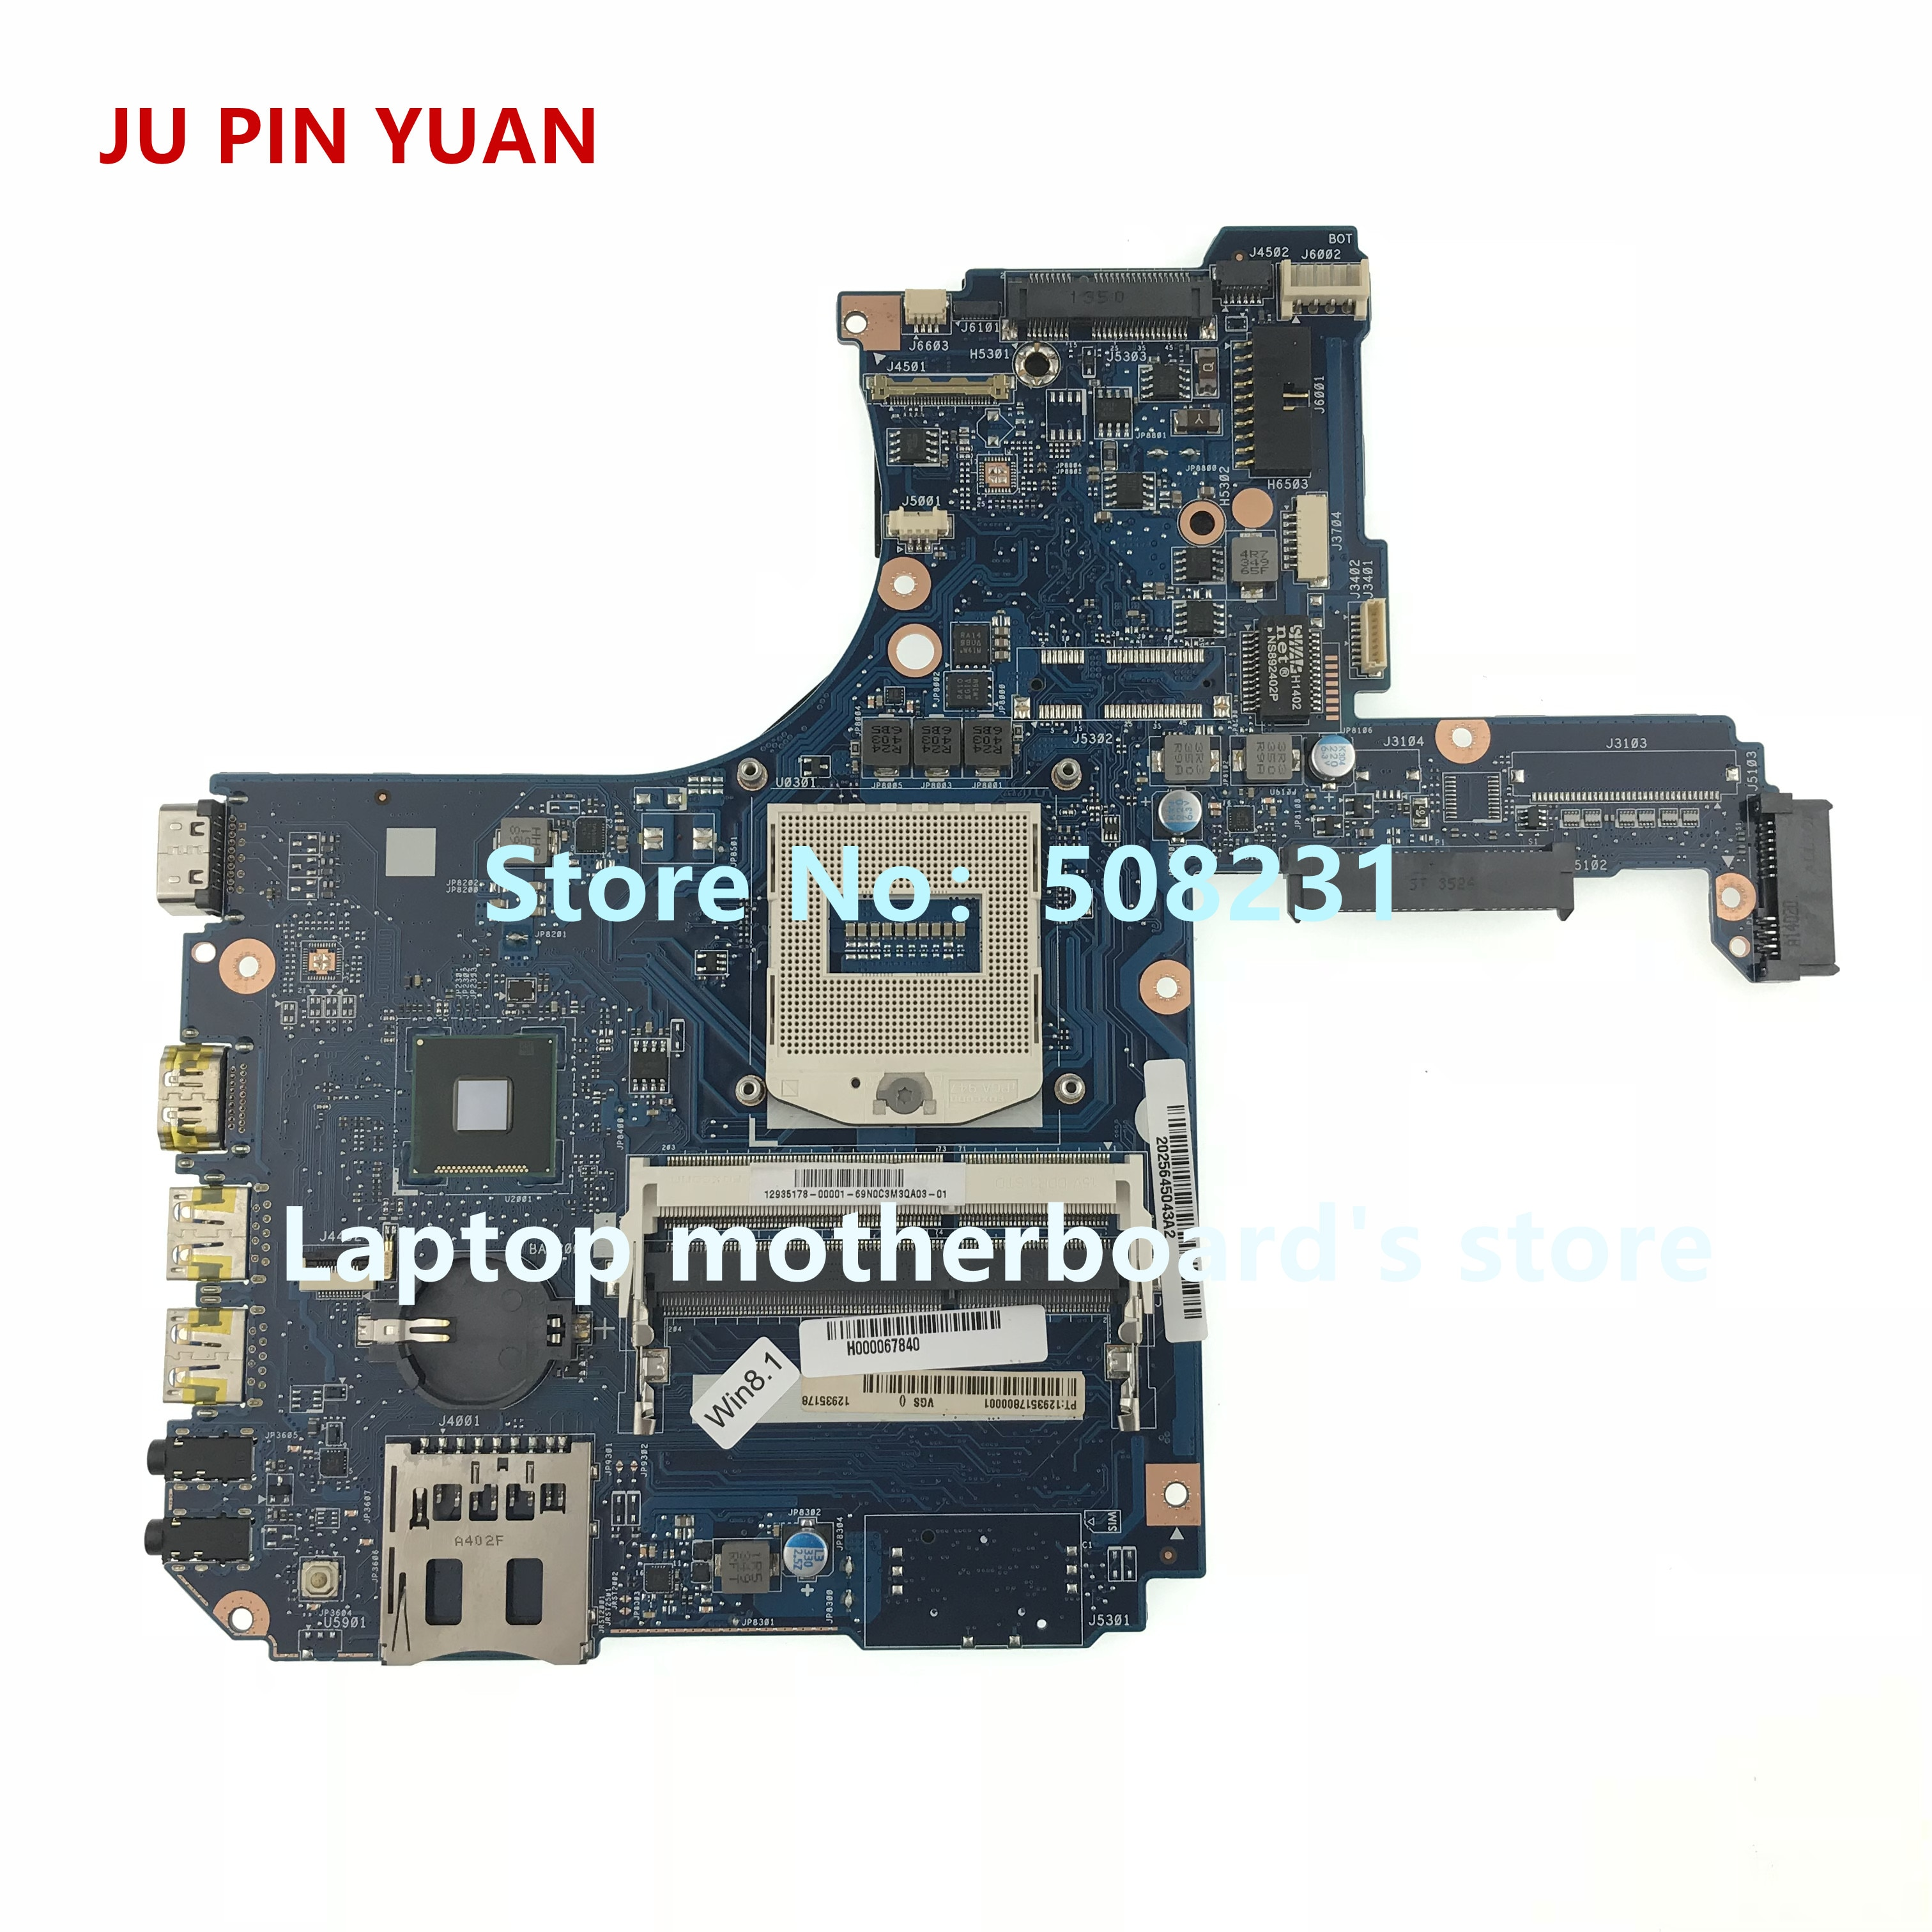 ju pin yuan h000055980 mainboard for toshiba satellite s50 s55t s55 s55 a s55 a5188 laptop motherboard socket pga 947 hm86 JU PIN YUAN For Toshiba Satellite L50-A L55-A laptop motherboard H000067840 mainboard socket PGA 947 HM86 DDR3L